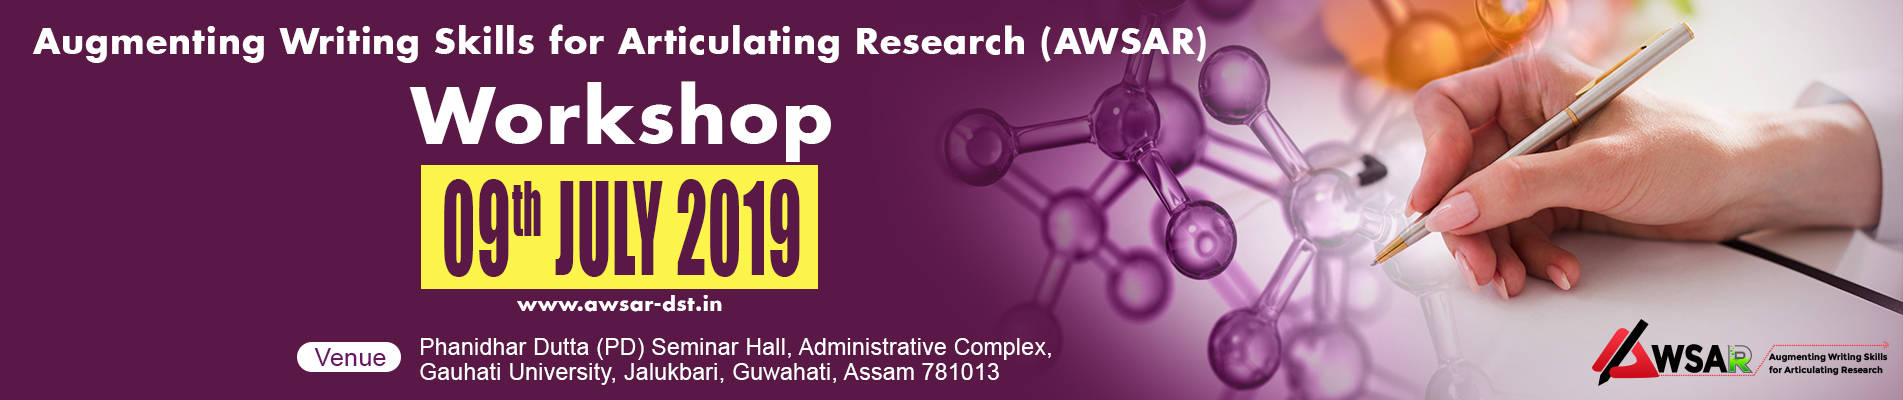 guwahati workshop